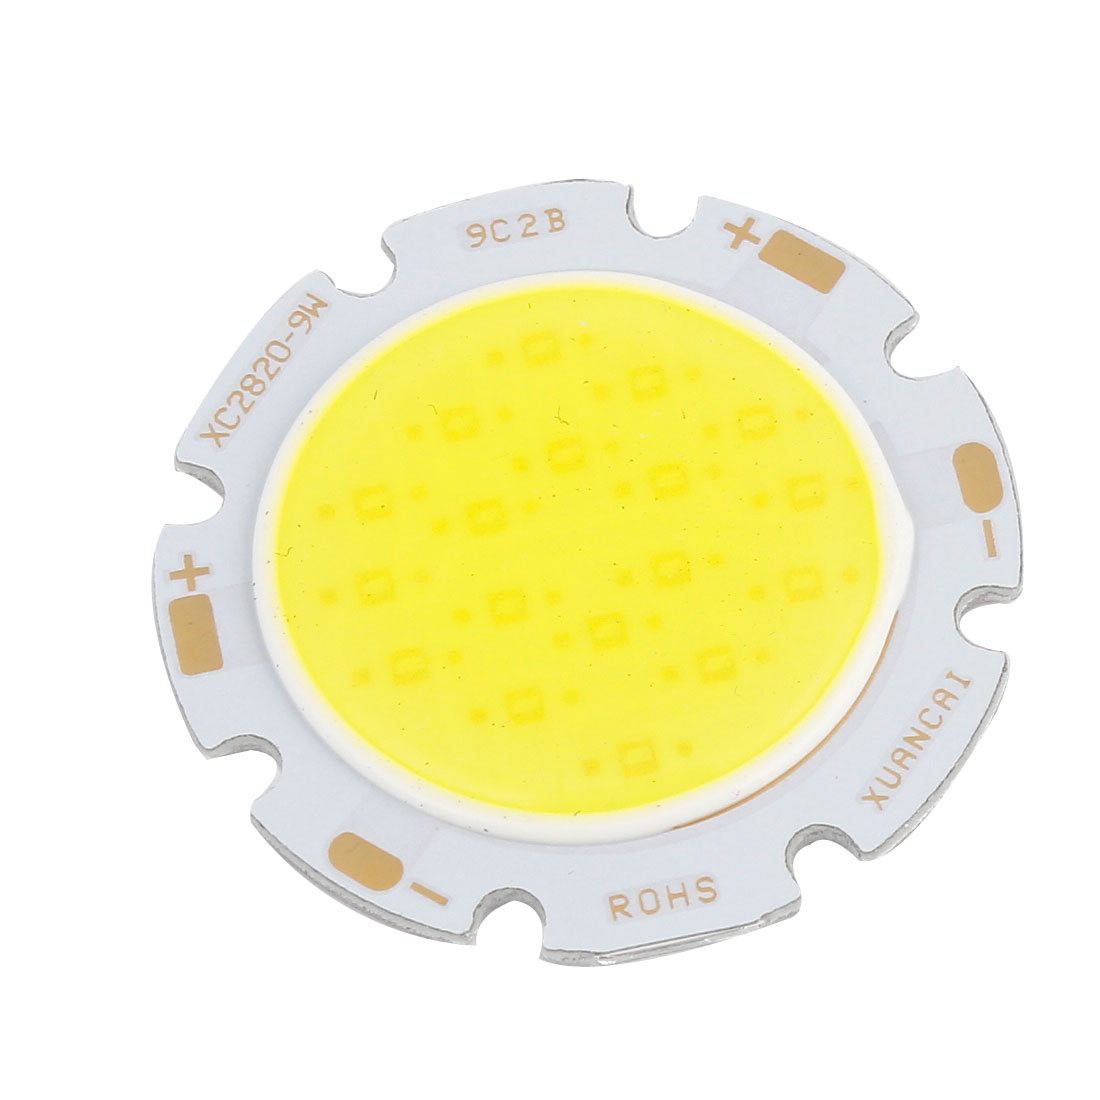 27-29V 300mA 9W Pure White Light High Power SMD COB LED Lamp Chip Bulb